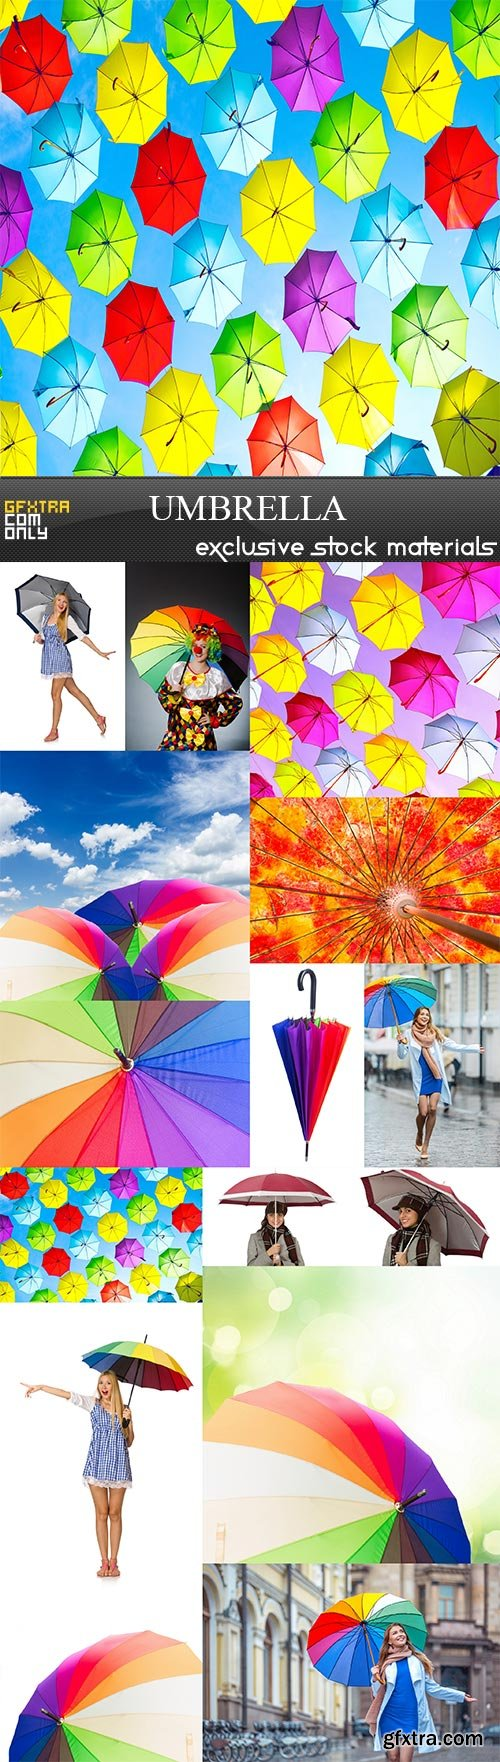 Umbrella, 15 x UHQ JPEG